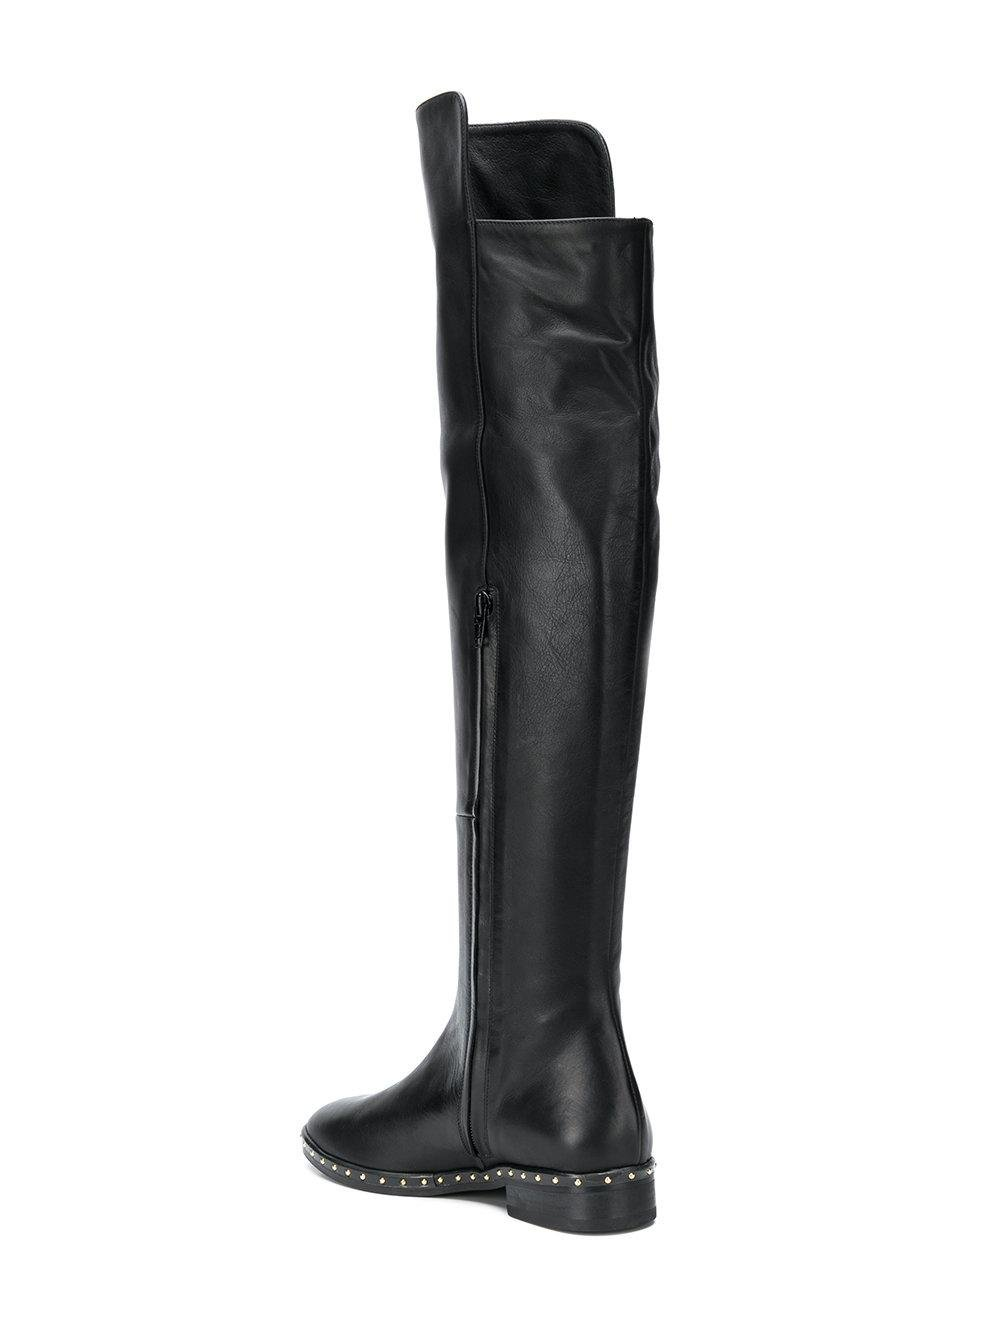 Marc Ellis Leather Studded Boots in Black